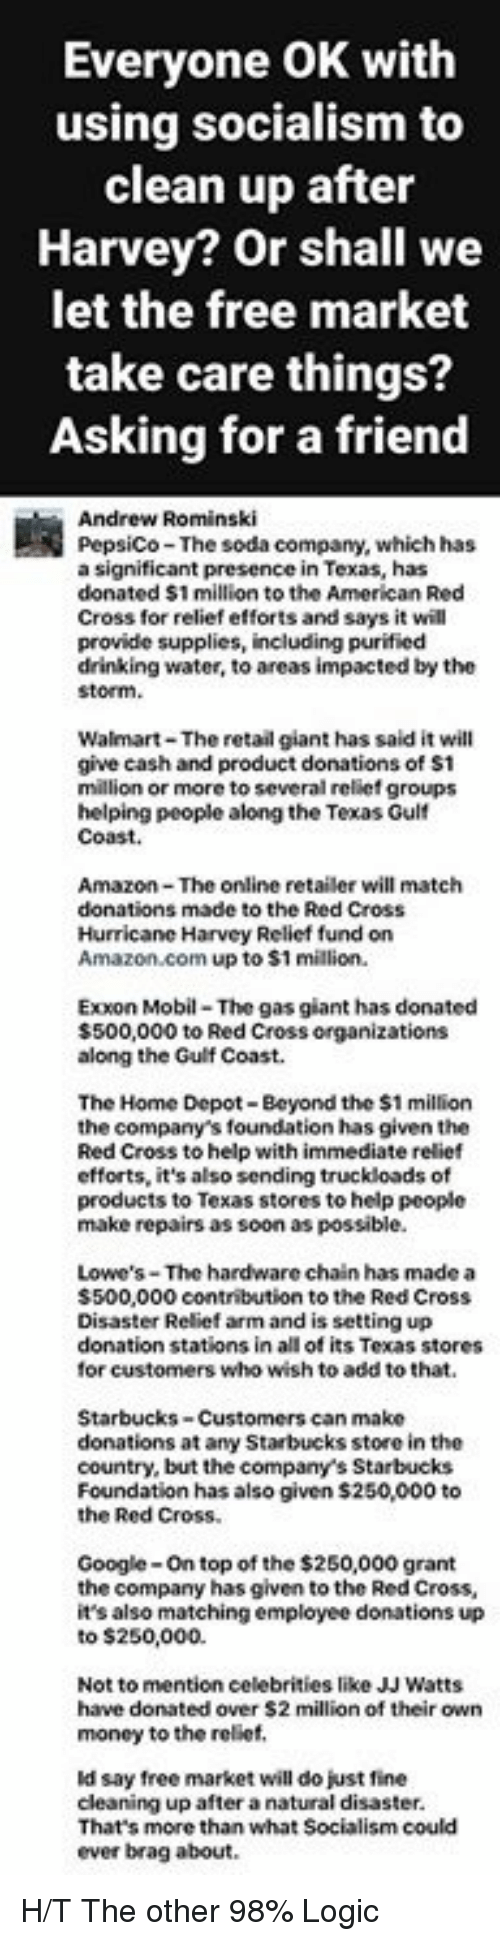 Mentiones: Everyone OK with  using socialism to  clean up after  Harvey? Or shall we  let the free market  take care things?  Asking for a friend  Andrew Rominski  PepsiCo-The soda company, which has  a significant presence in Texas, has  donated $1 million to the American Red  Cross for relief efforts and says it will  provide supplies, including purified  豳;  king water, to areas impacted by the  Walmart The retail giant has said it will  e cash and product donations of $1  million or more to several reliet groups  lping people along the Texas Gult  Coast.  Amazon-The online retailer will match  donations made to the Red Cross  Hurricane Harvey Relief fund on  Amazon.com up to $1 million.  xxon Mobil The gas giant has donated  $500,000 to Red Cross organizations  along the Gulf Coast  the company's foundation has given the  Red Cross to help with immediate relief  efforts, it's also sending truckloads o  roducts to Texas stores to help people  ake repairs as soon as possible  Lowe's-The hardware chain has made a  $500,000 contribution to the Red Cross  Disaster Relief arm and is setting up  nation stations in all of its Texas stores  for customers who wish to add to that.  tarbucks-Customers can make  donations at any Starbucks store in the  country, but the company's Starbucks  Foundation has also given $250,000 to  the Red Cross  Google-On top of the $250,000 grant  he company has given to the Red Cross,  it's also matching employee donations up  to $250,000.  ot to mention celebrities like JJ Watts  have donated over $2 million of their own  money to the relief,  say free market will do just fine  cleaning up after a natural disaster.  That's more than what Socialism could  ever brag about H/T The other 98% Logic